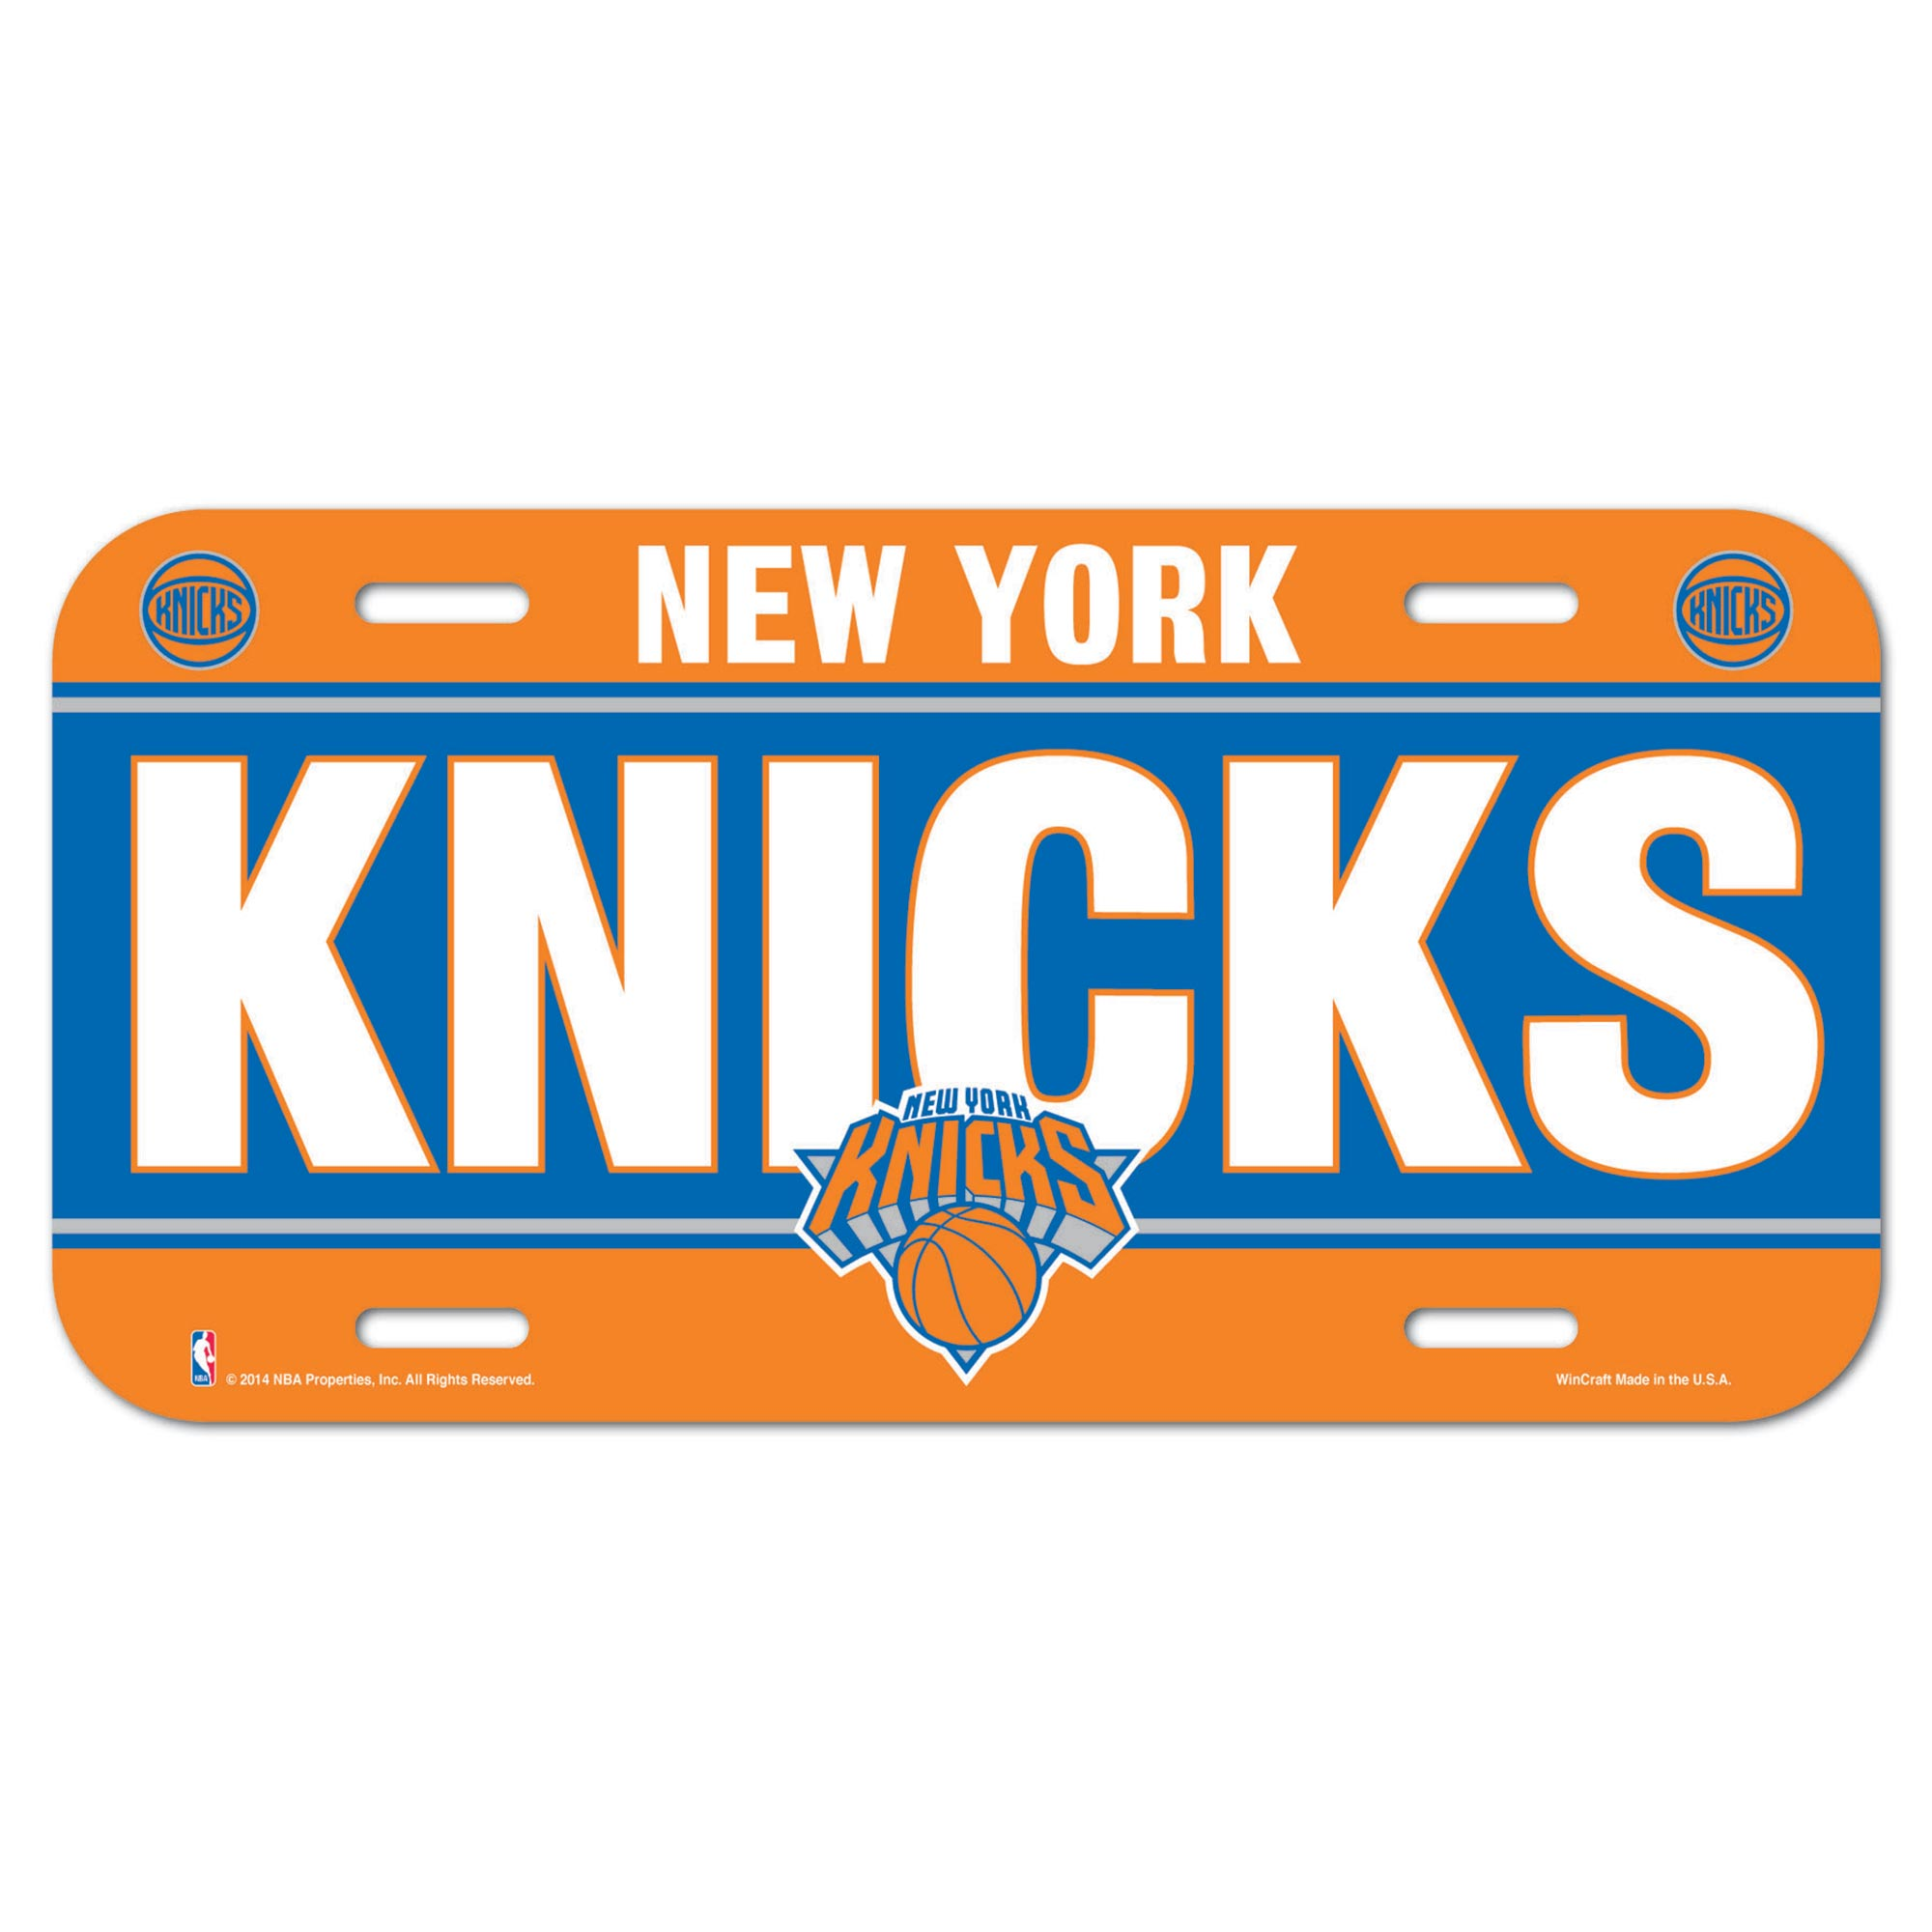 New York Knicks Wall License Plate